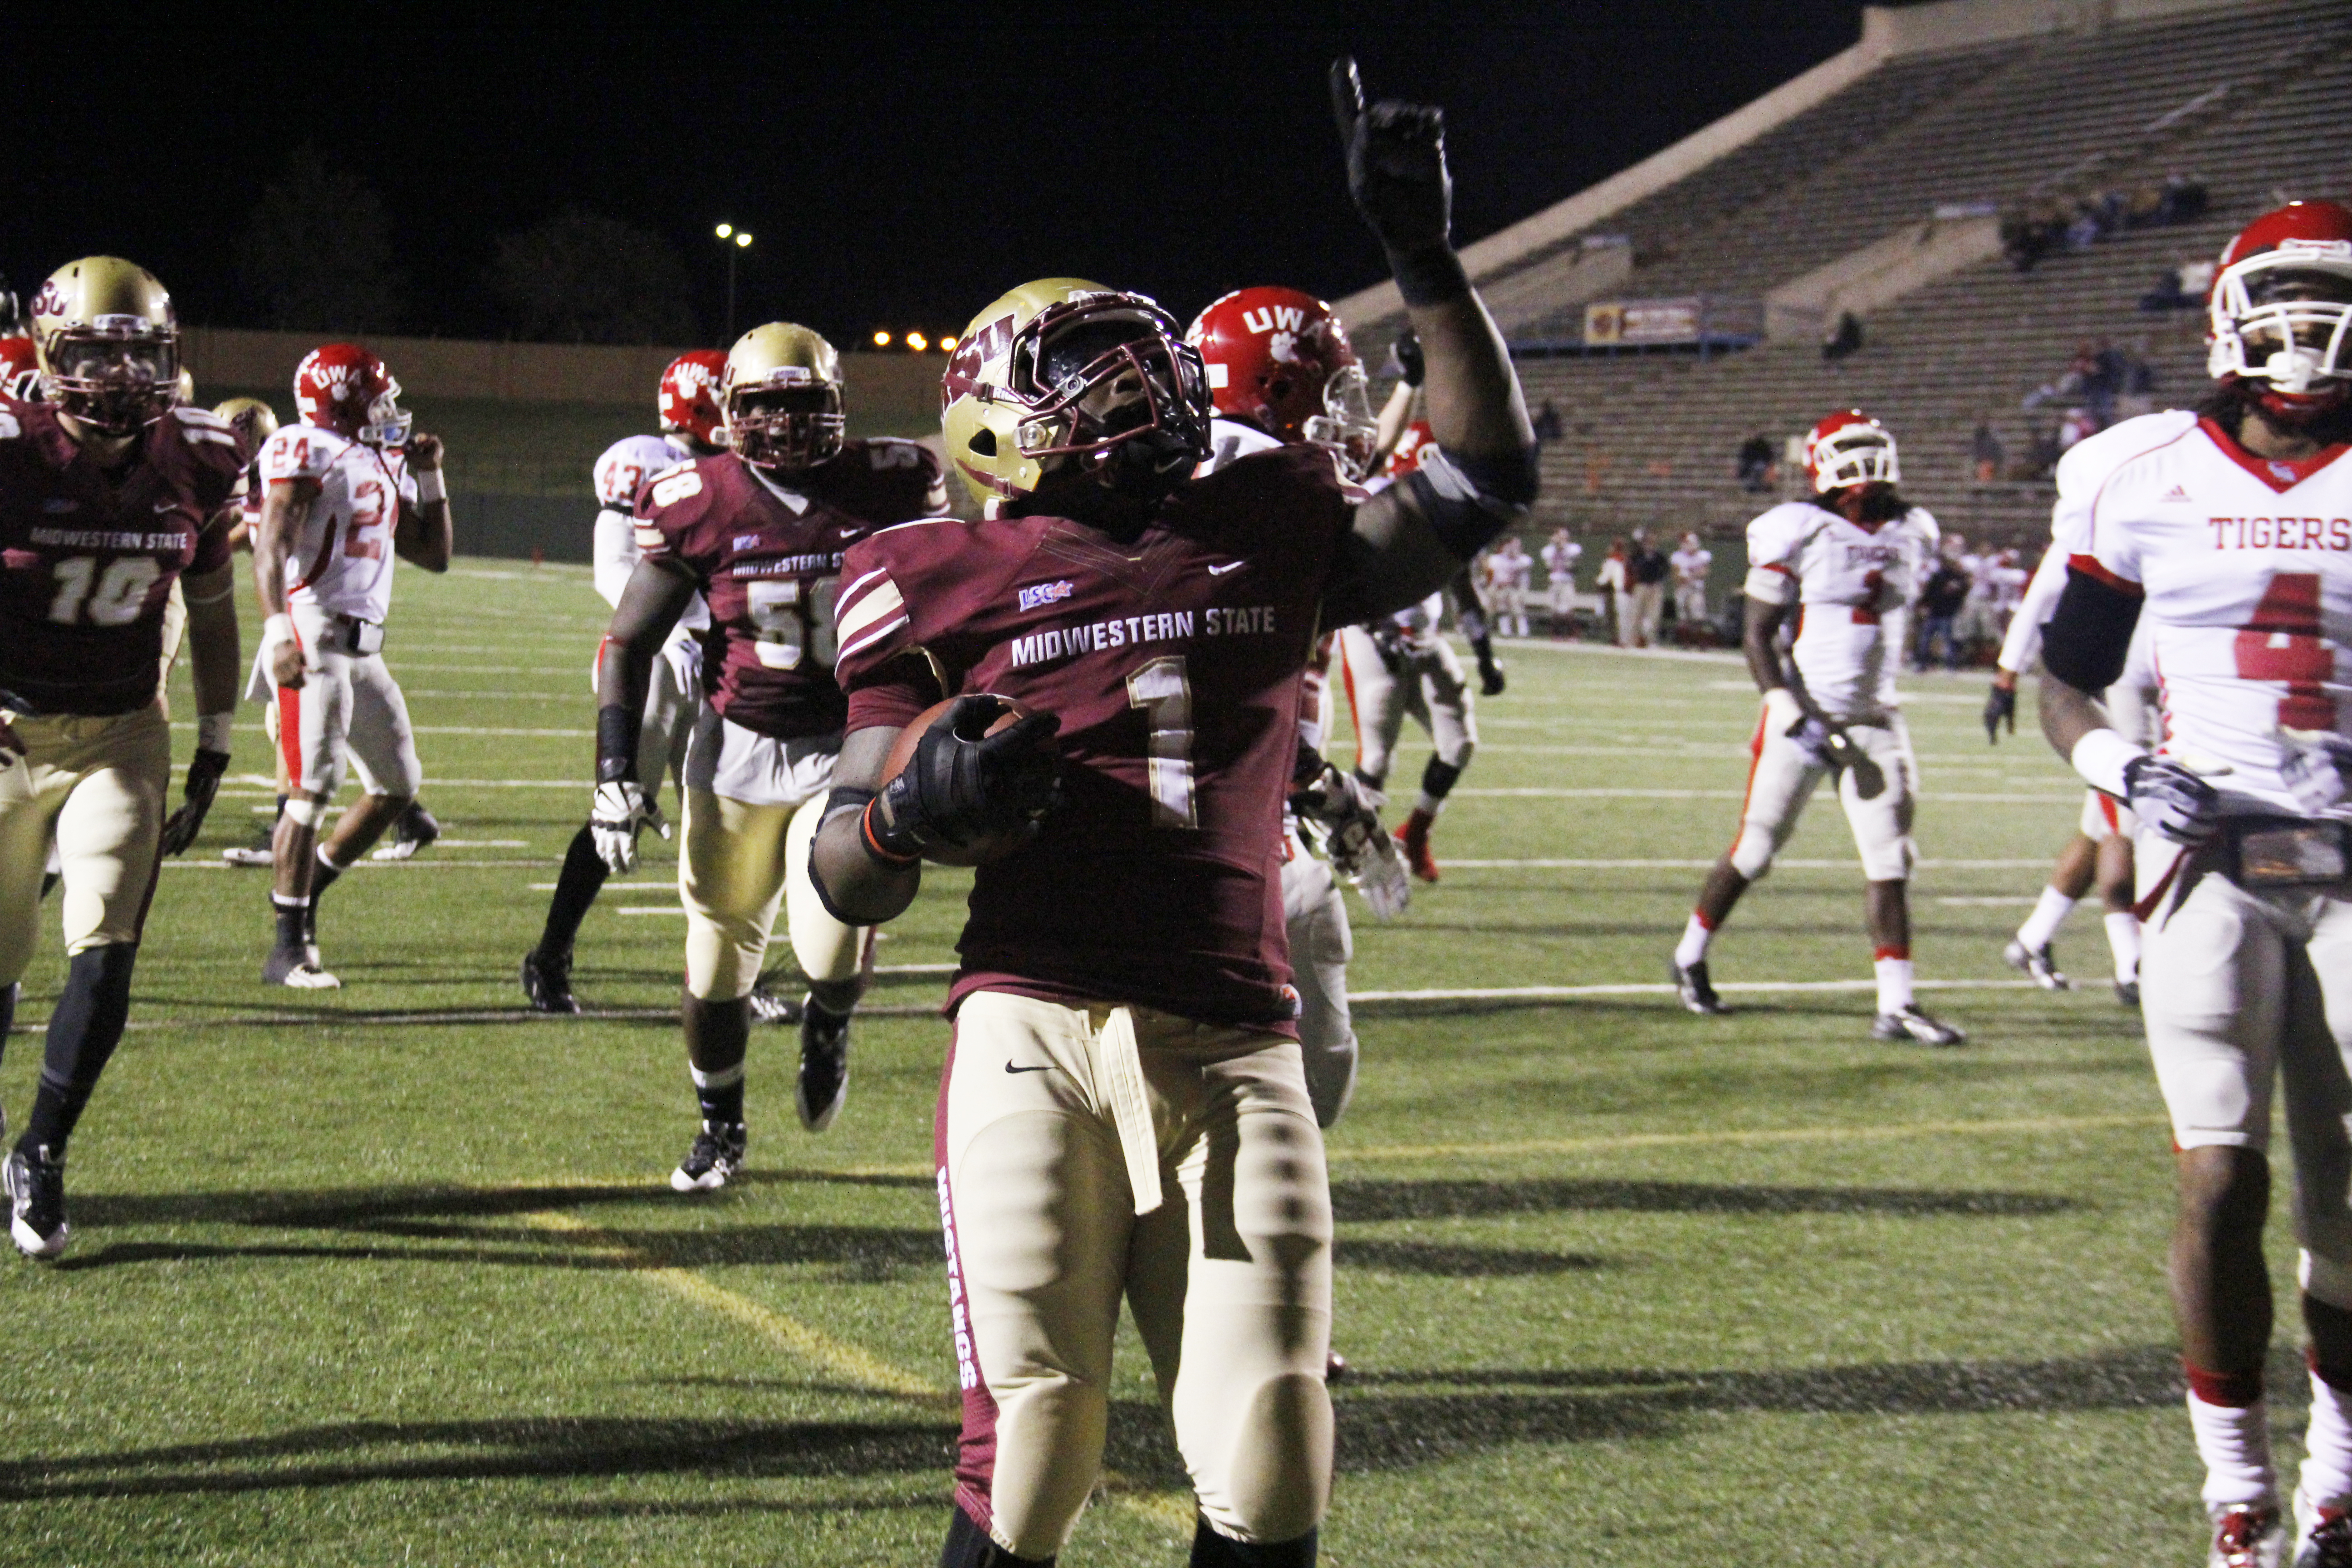 Keidrick Jackson, senior in criminal justice, celebrates after a touchdown in the second quarter. MSU would defeat the University of West Alabama in a rout of 45-21 October 19 at Memorial Stadium. Jackson rushed for 136 yards and had three touchdowns becoming MSU's all-time leading rusher with 3,596 yards. MSU plays at Angelo State October 26 with kickoff at 6 p.m.